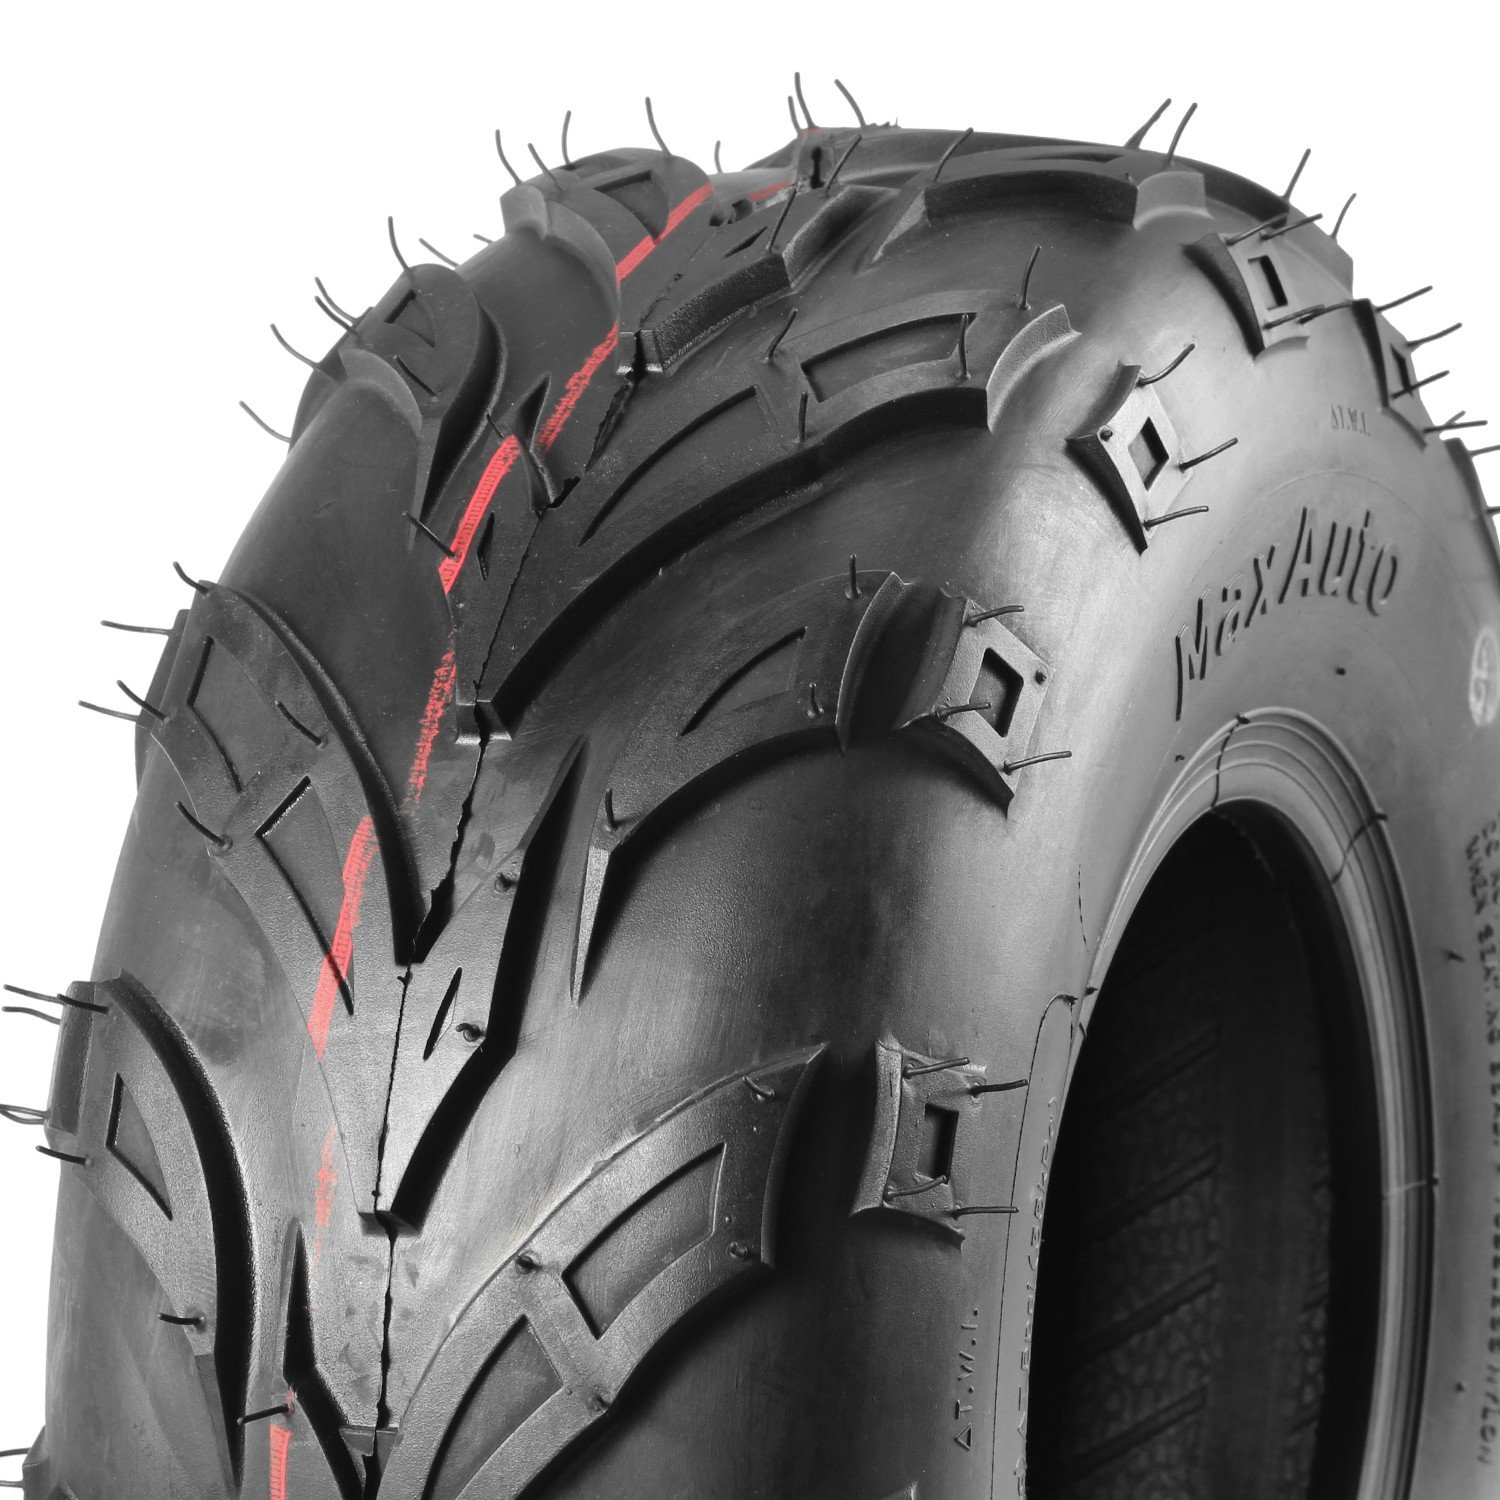 Pack of 4 Sport ATV Tires 145/70-6, 145x70-6 4Ply Go-Kart Lawn mini bike Tires by MaxAuto (Image #6)